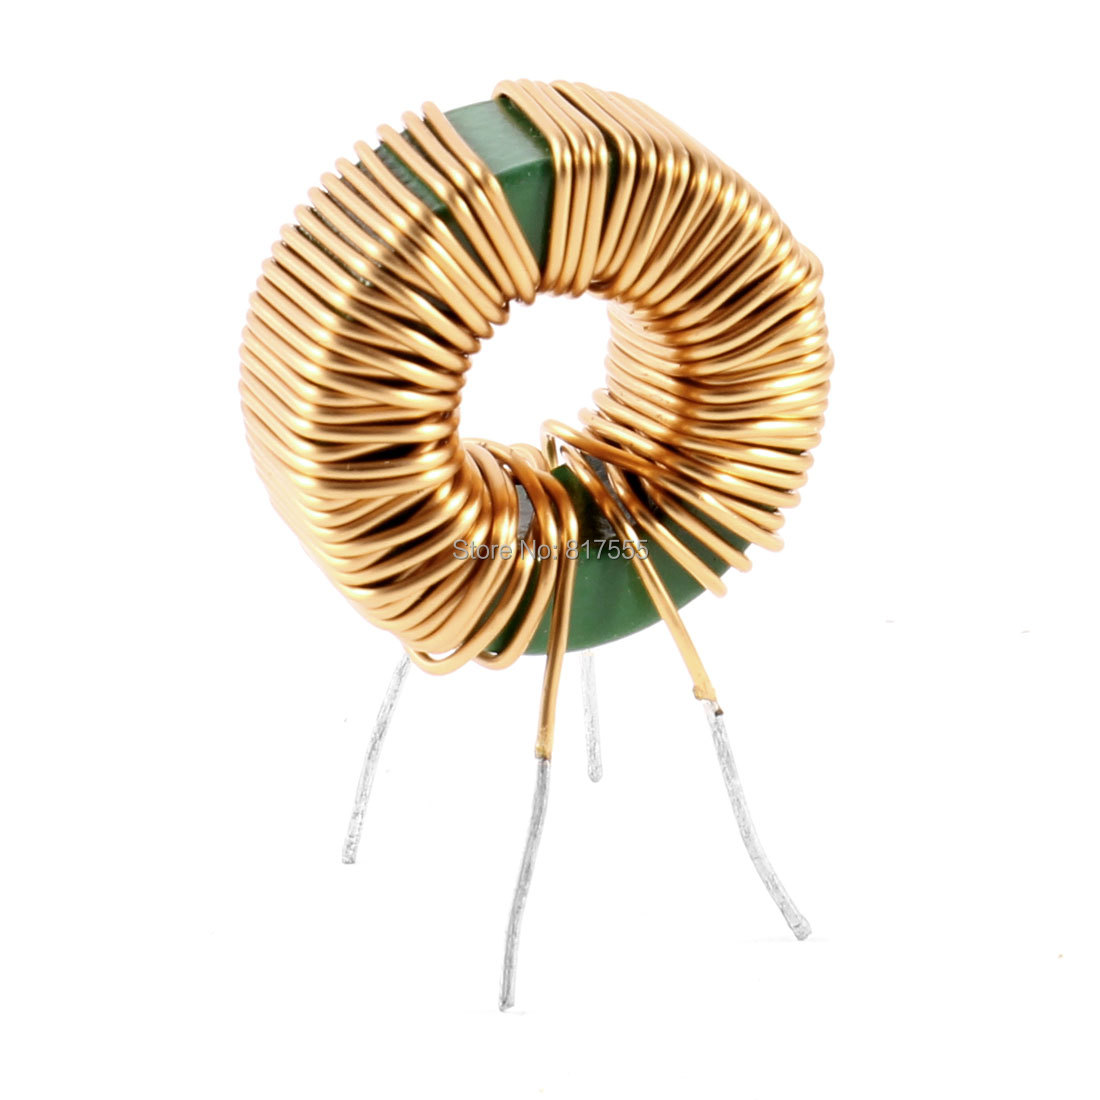 Toroid Core Common Mode Inductor Choke Wire Wind 10MH 40mOhm 4A Coil Discount 50(China (Mainland))